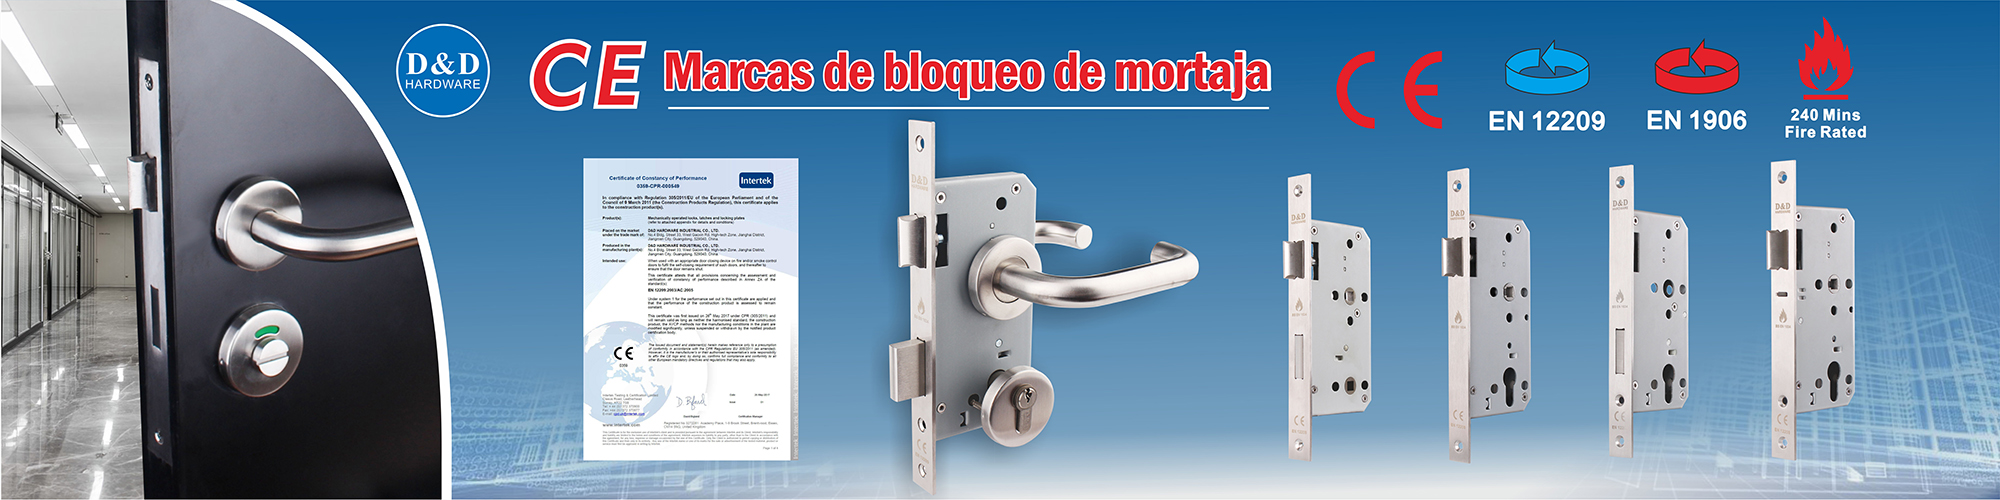 CE mark mortise lock